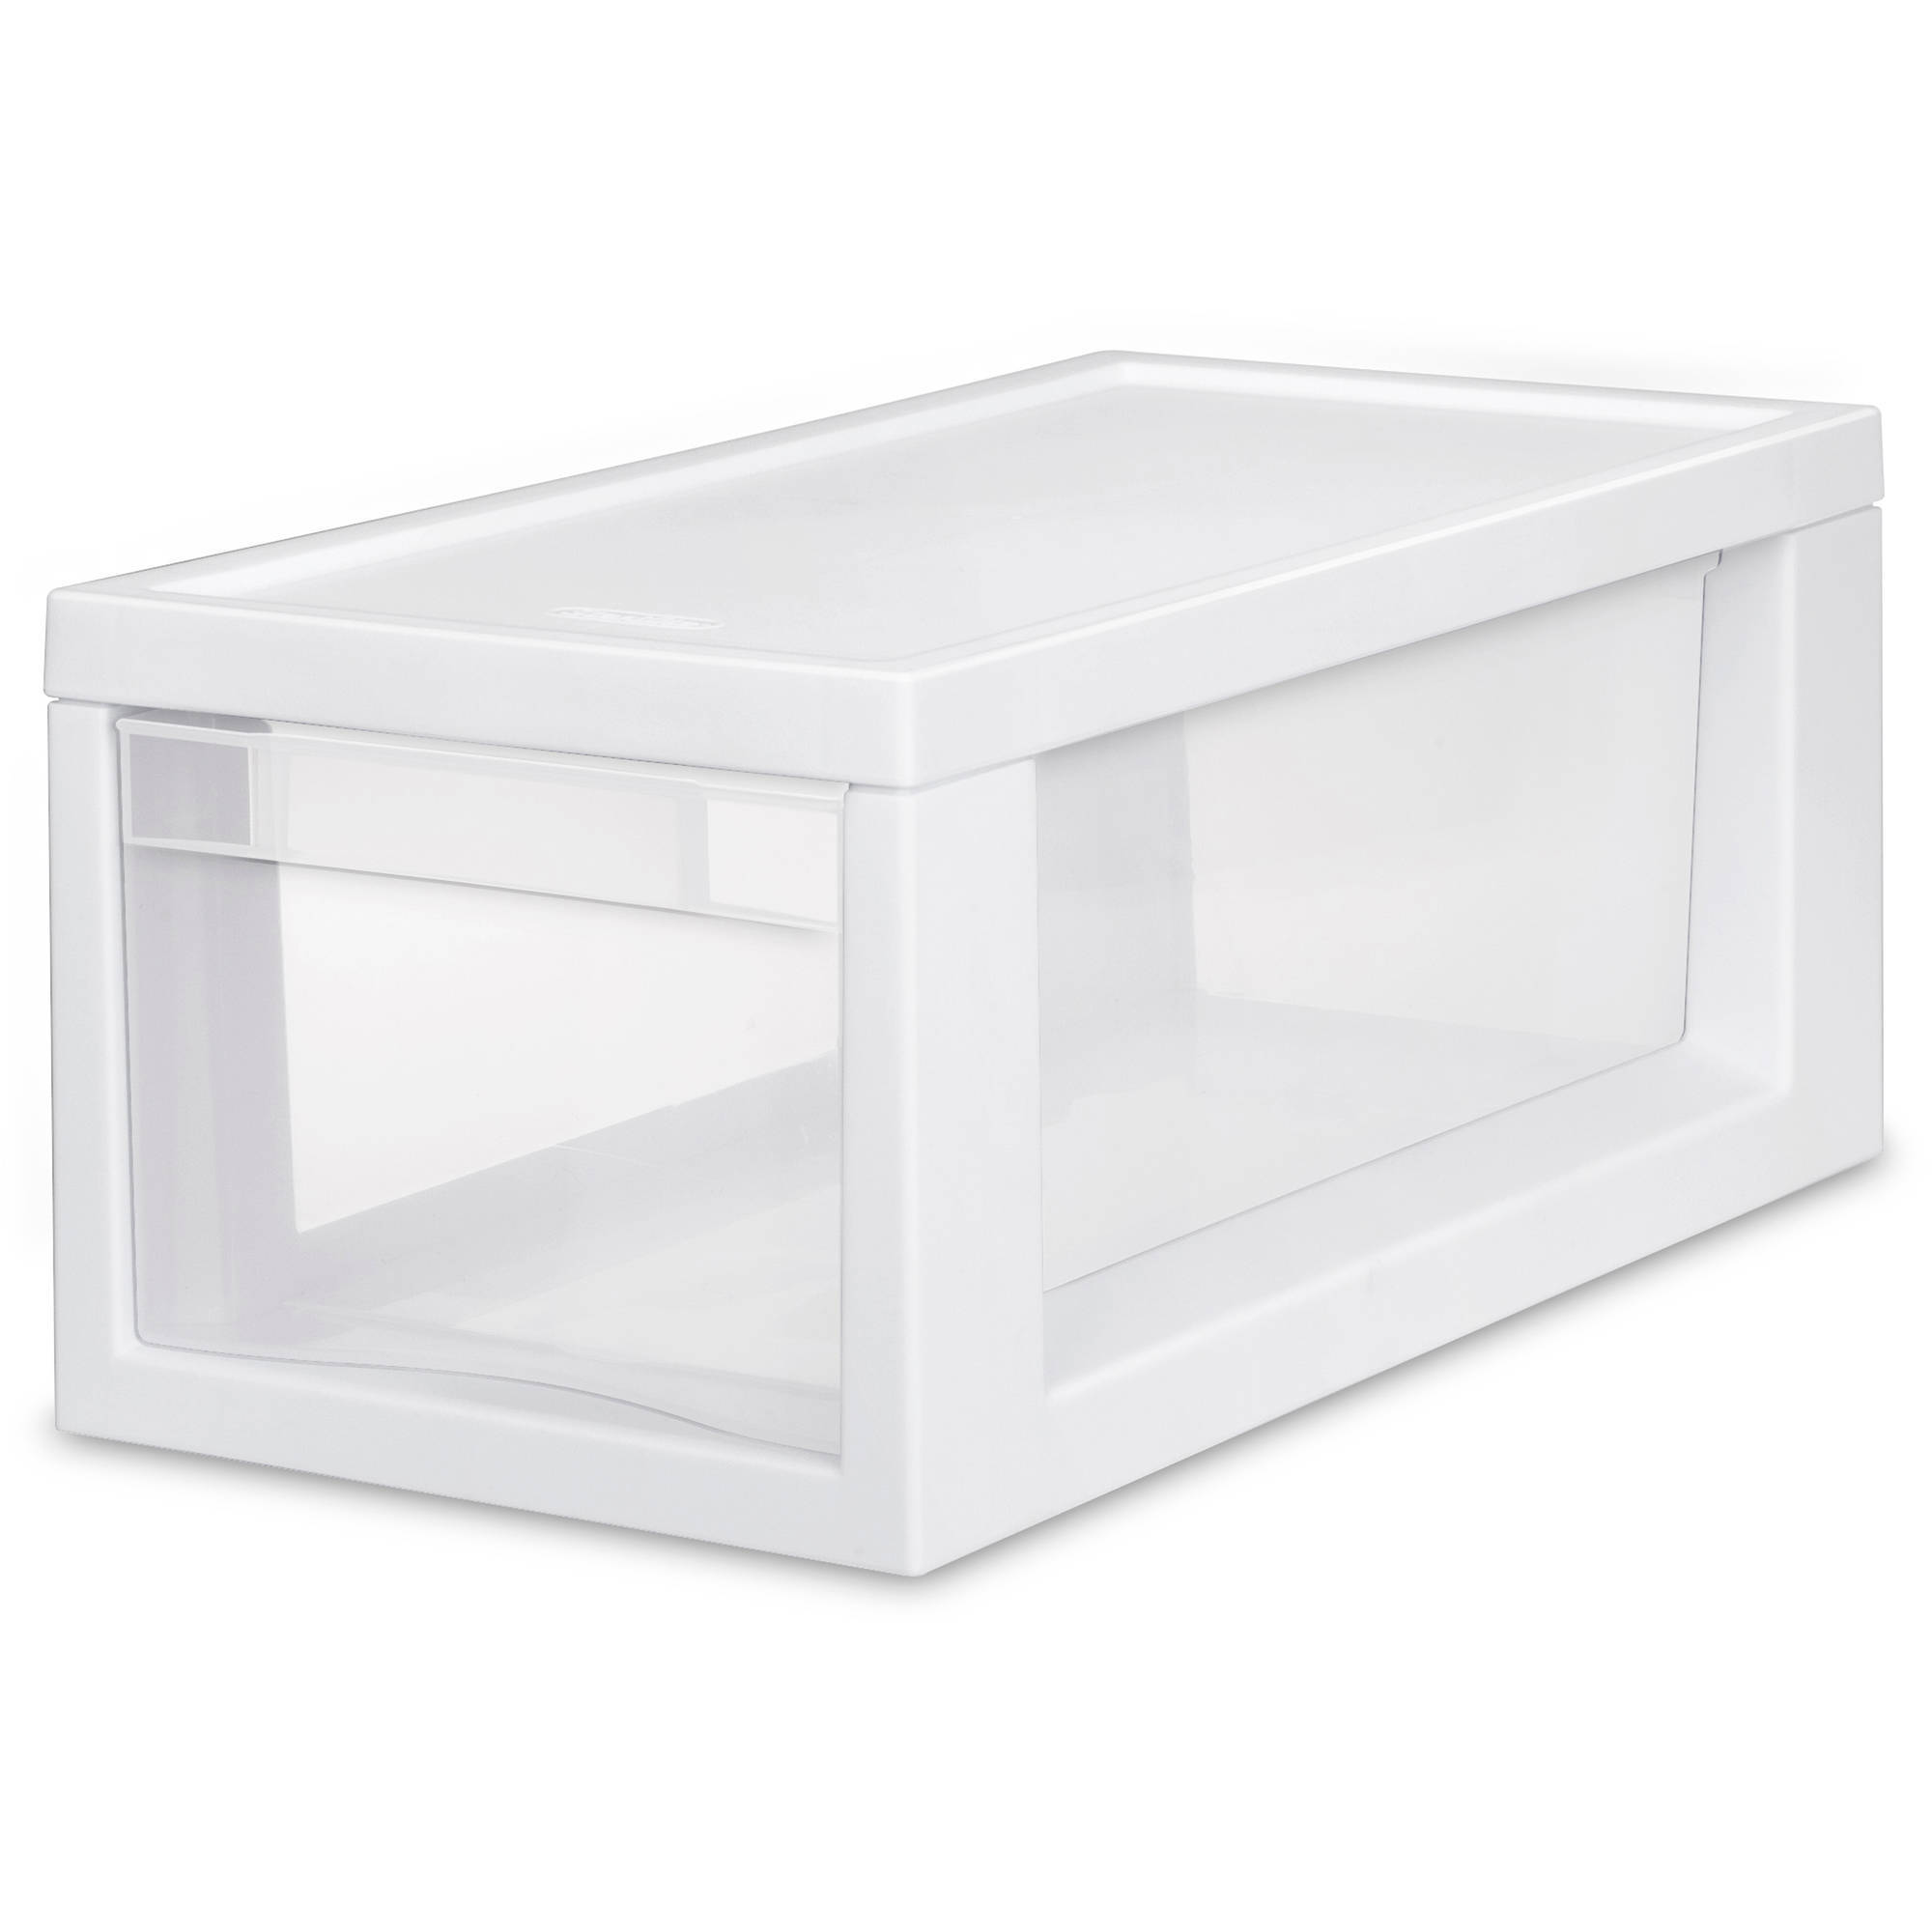 Sterilite Narrow Modular Drawers- White (Available in Case of 6 or Single Unit)